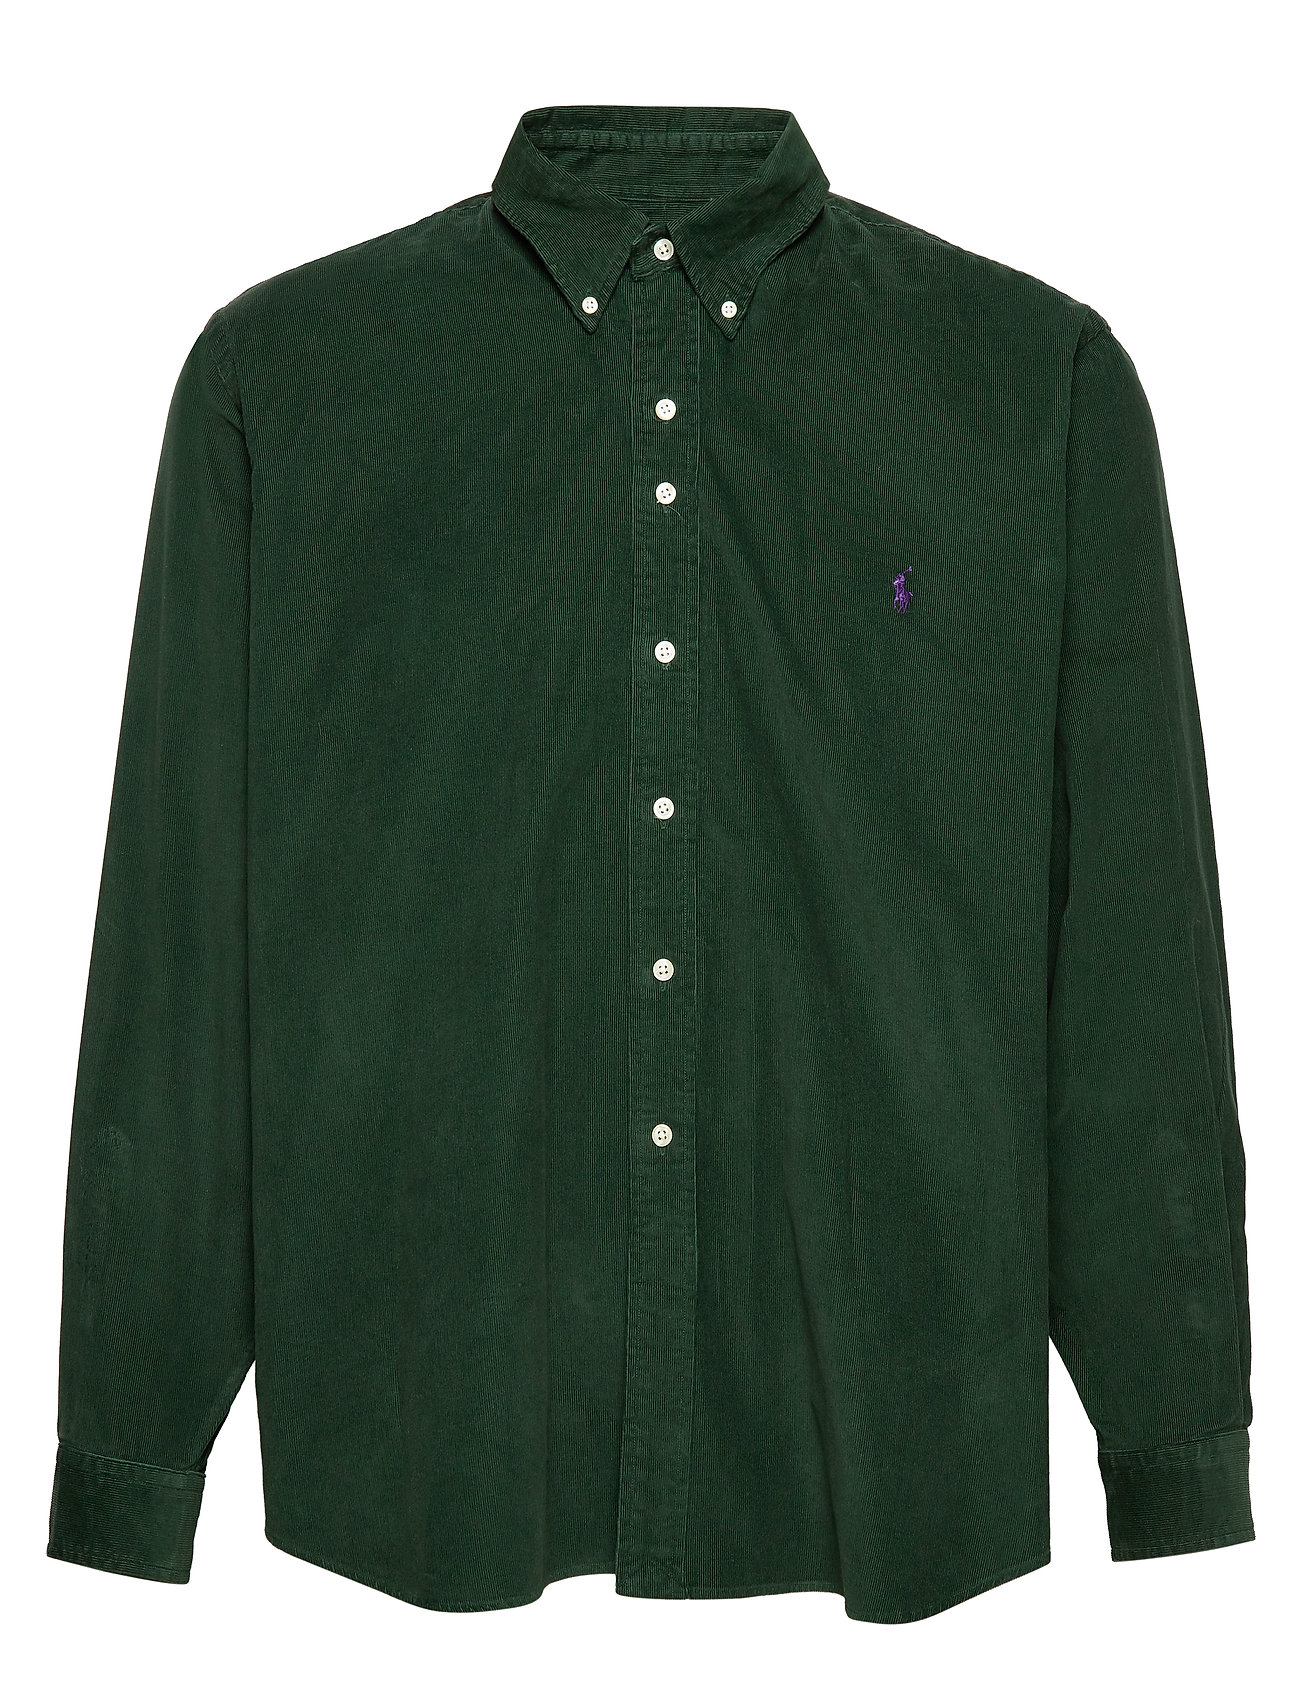 Polo Ralph Lauren Big & Tall Classic Fit Corduroy Shirt - COLLEGE GREEN